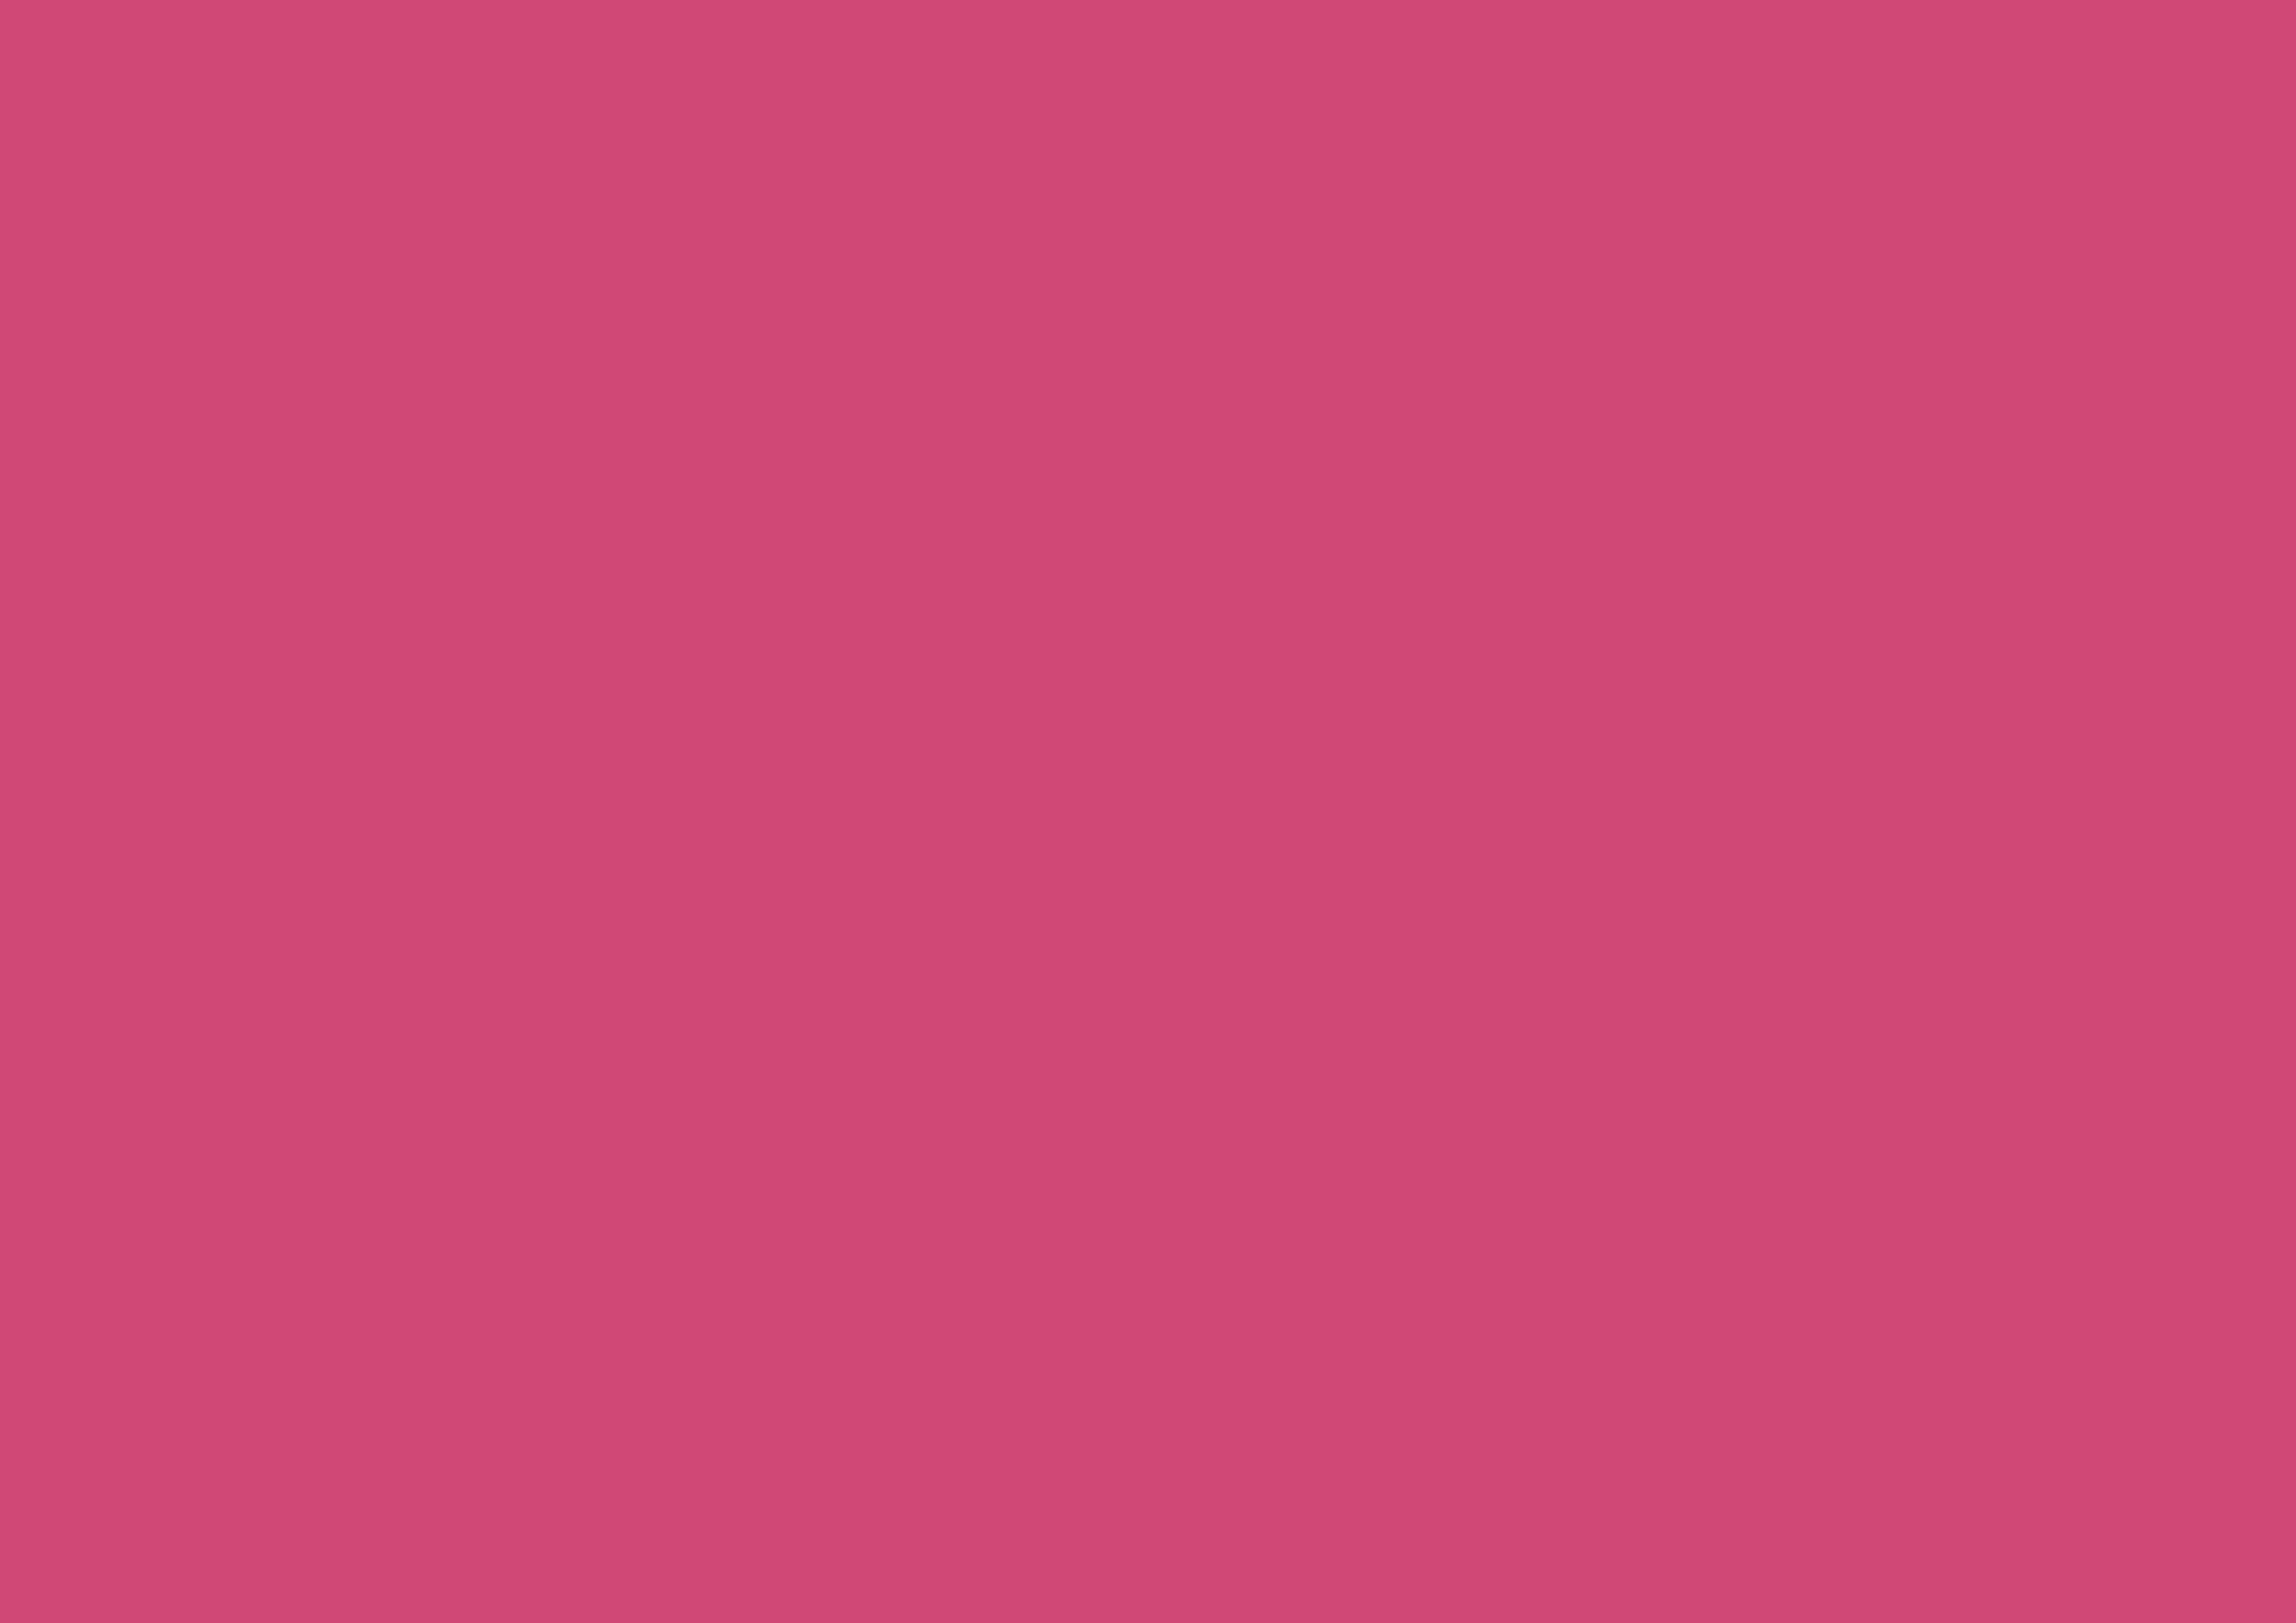 3508x2480 Ruber Solid Color Background